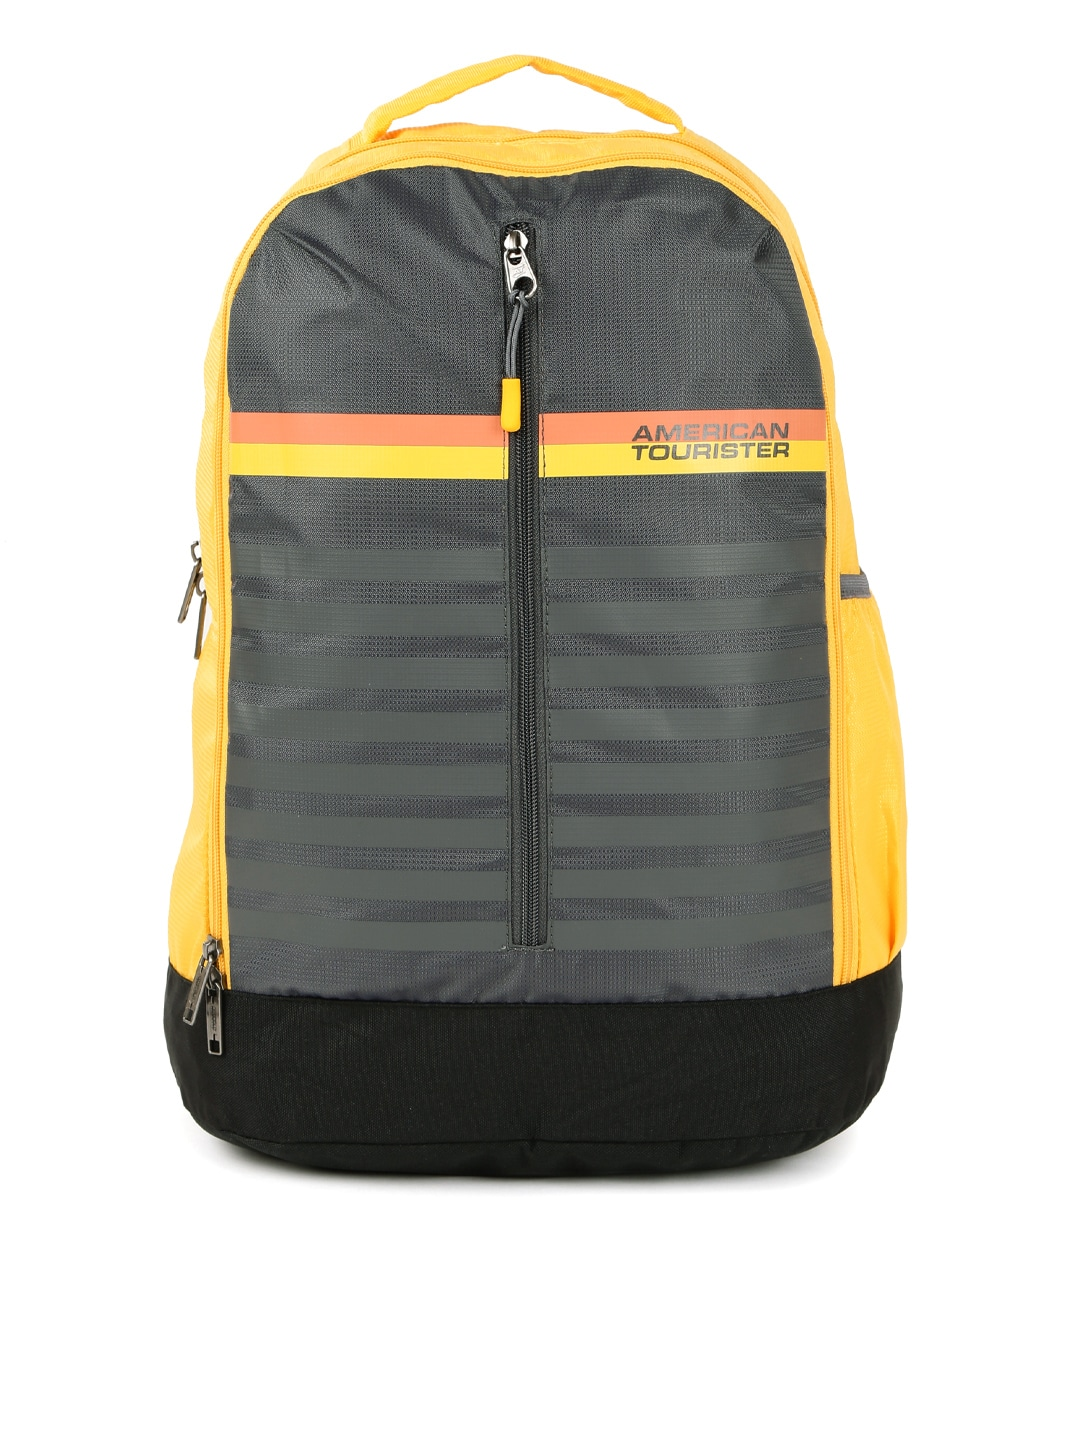 8adc23037af9 Green Yellow Backpacks - Buy Green Yellow Backpacks online in India